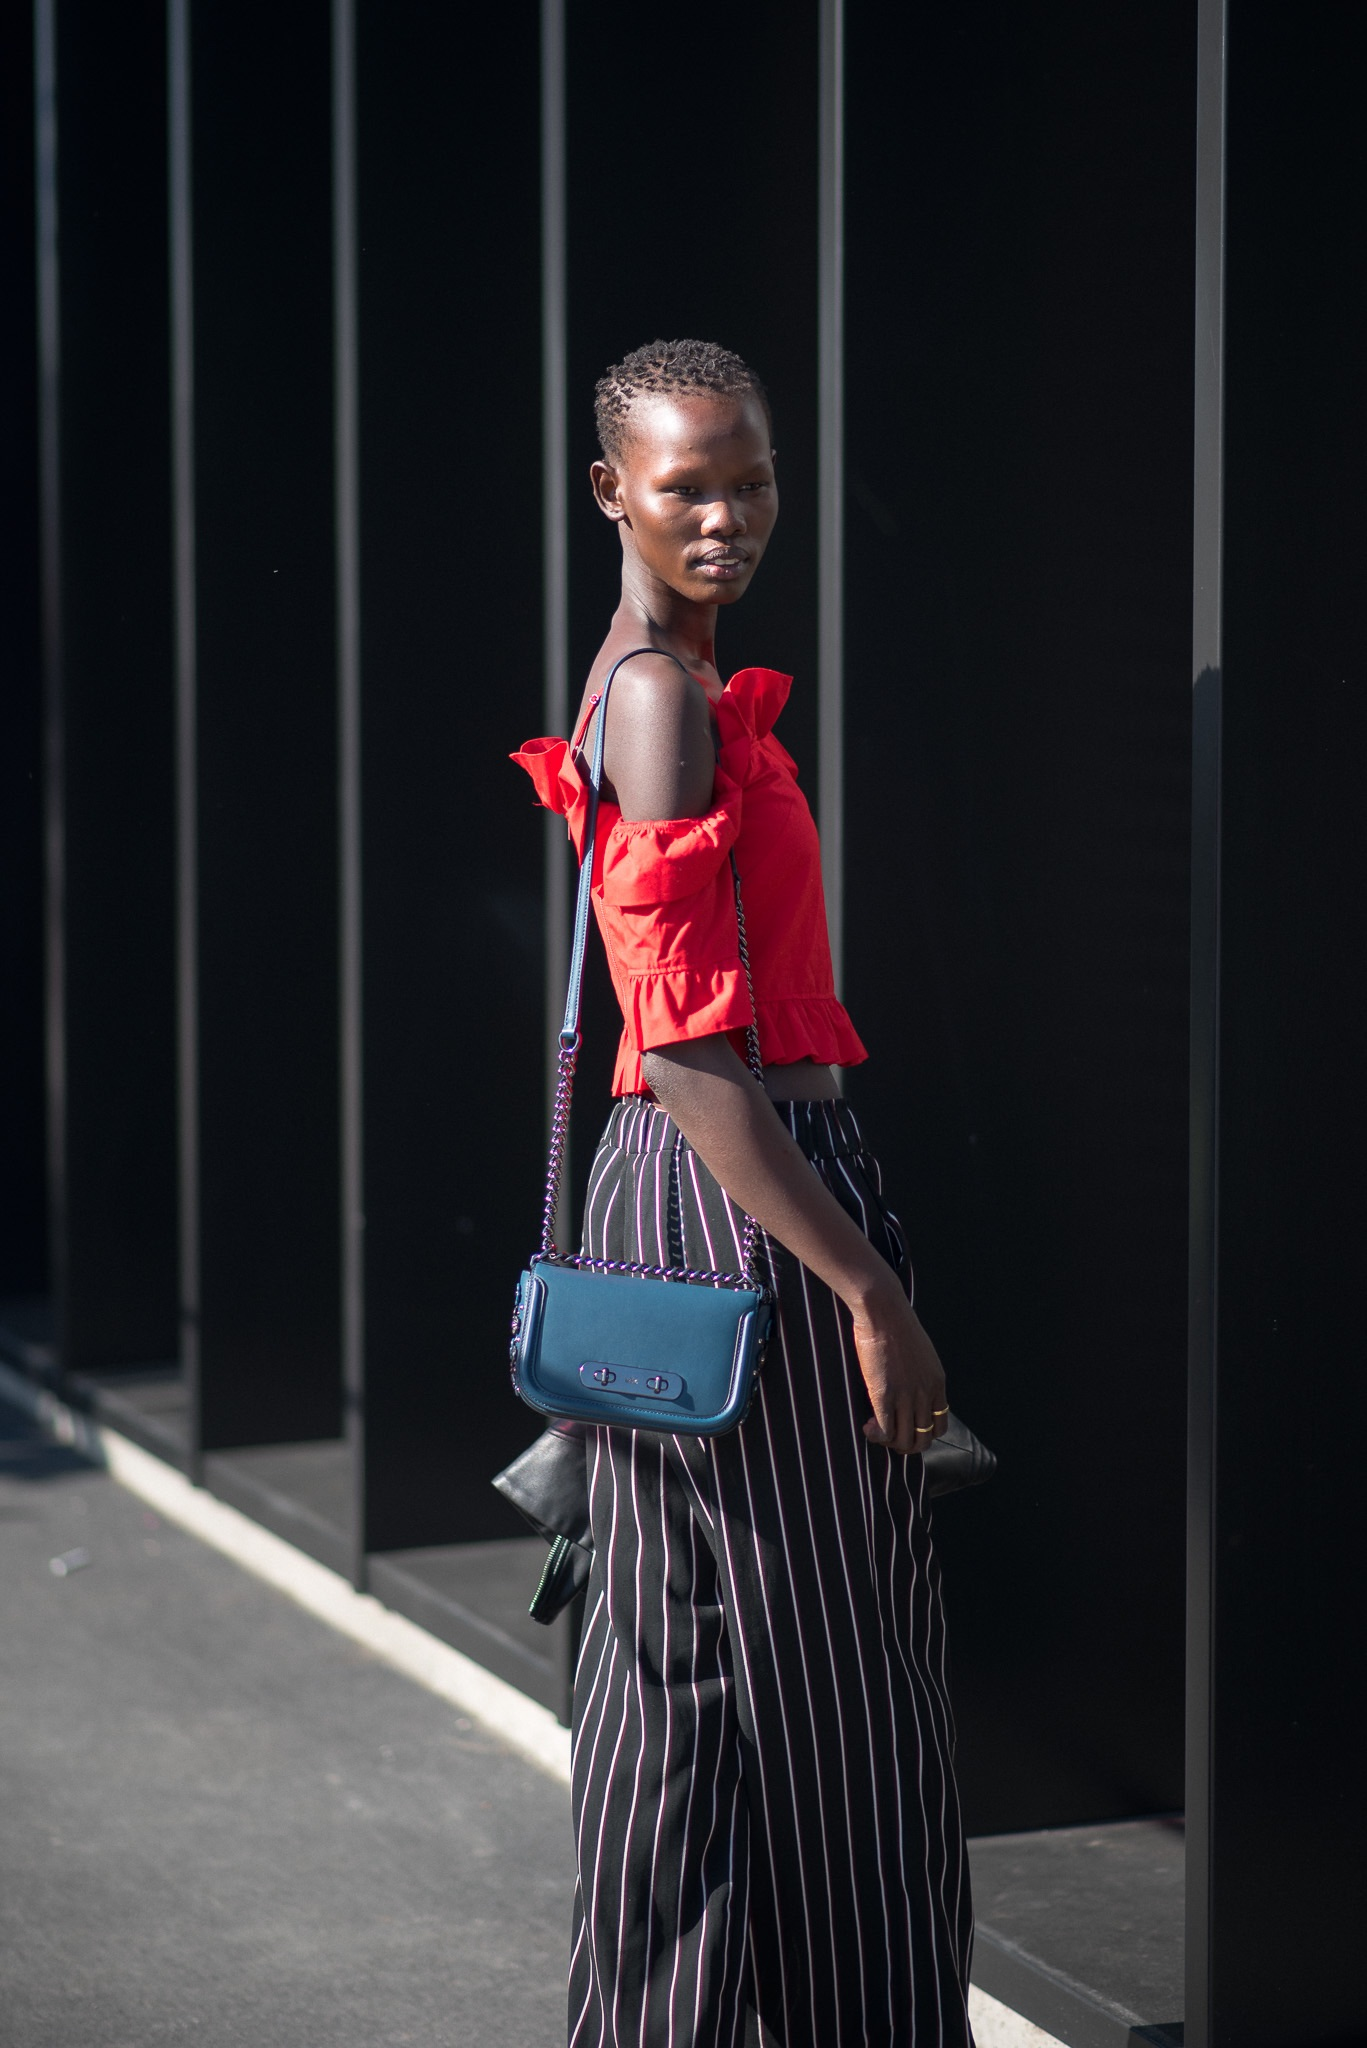 Shanelle Nyasiase Models Off Duty Gucci Milan Fashion Week September 2017 Photography Annika Lagerqvist www.annikasomething.com